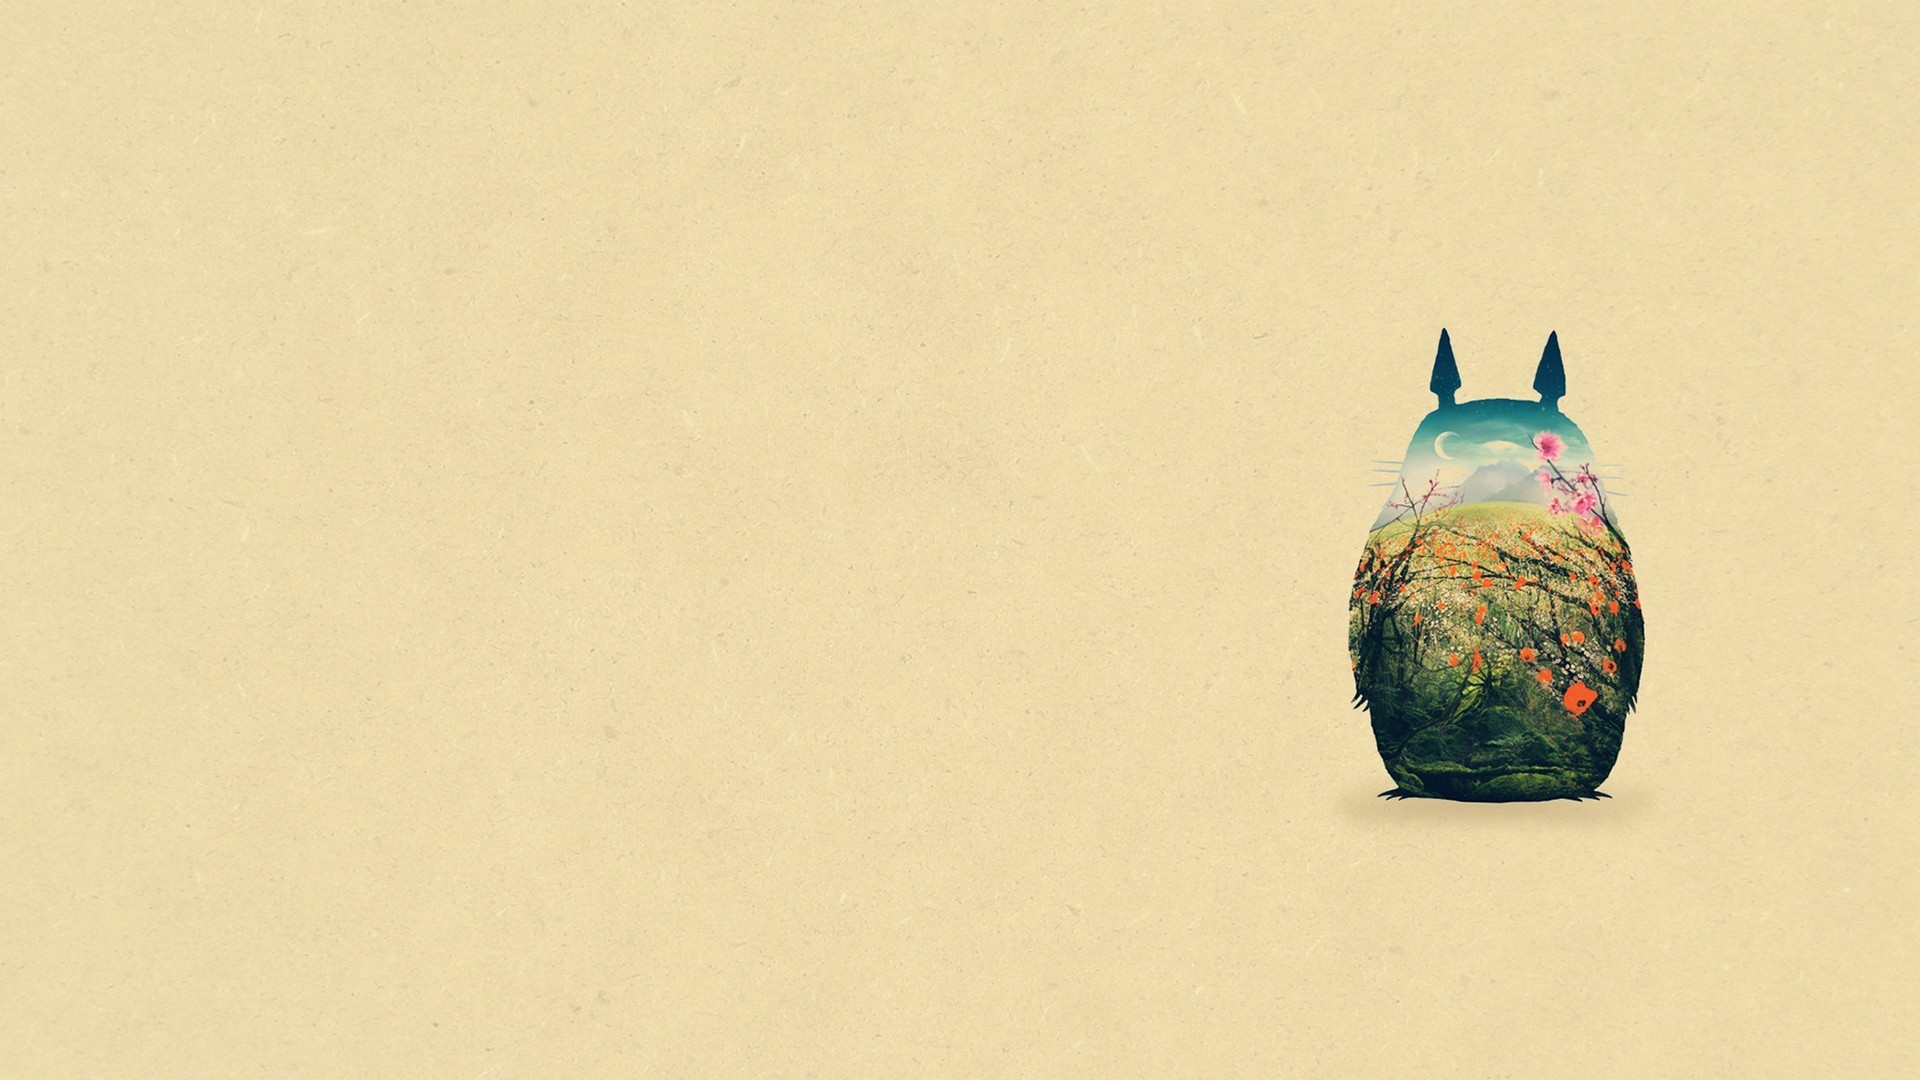 My Neighbor Totoro Wallpaper 27981 1920x1080 px HDWallSourcecom